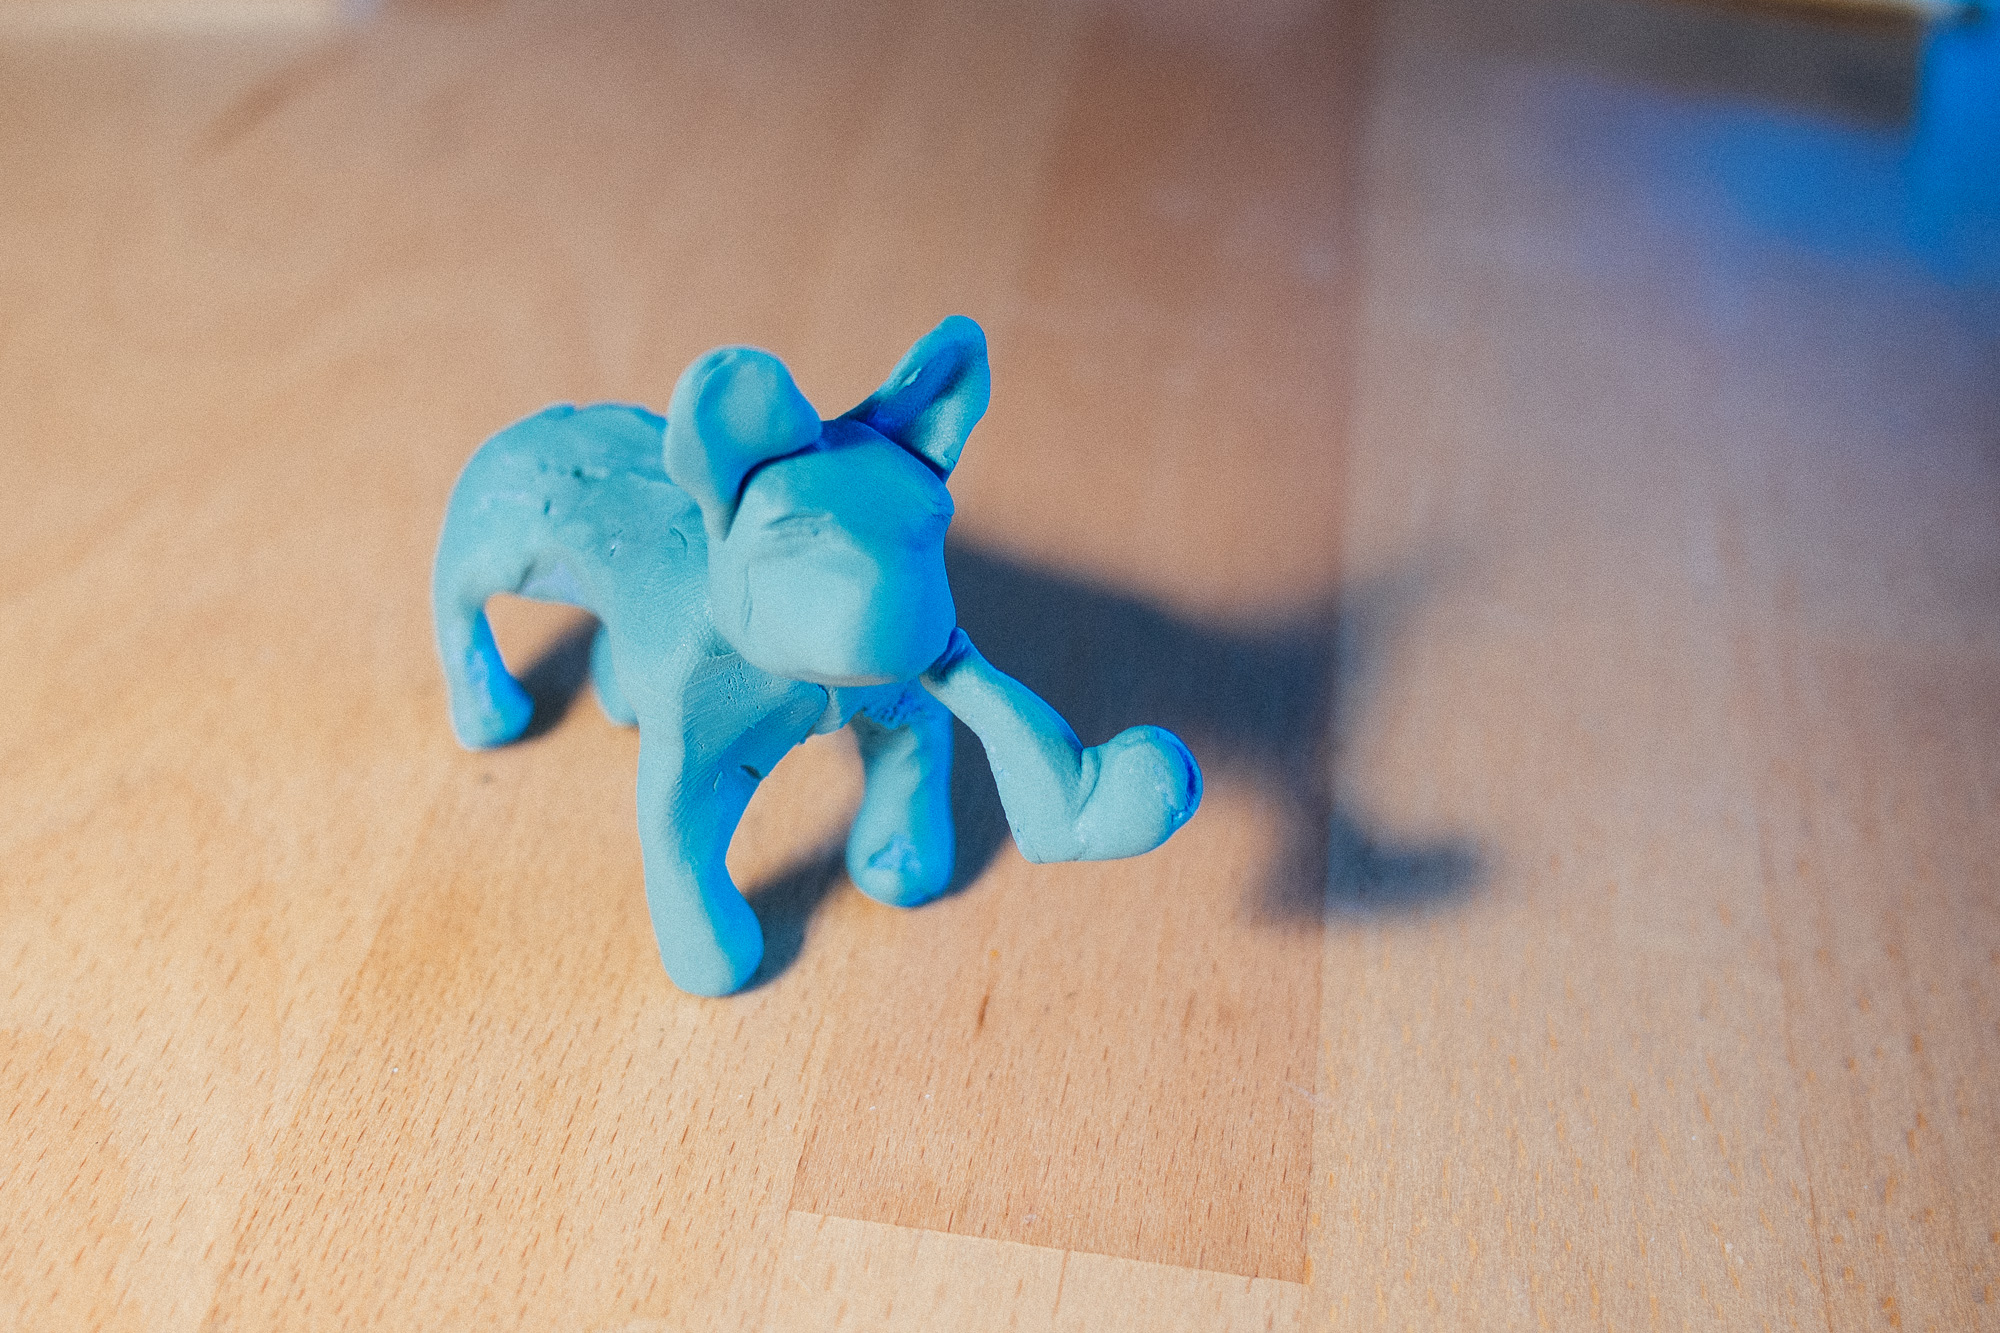 A dog made out of blue clay